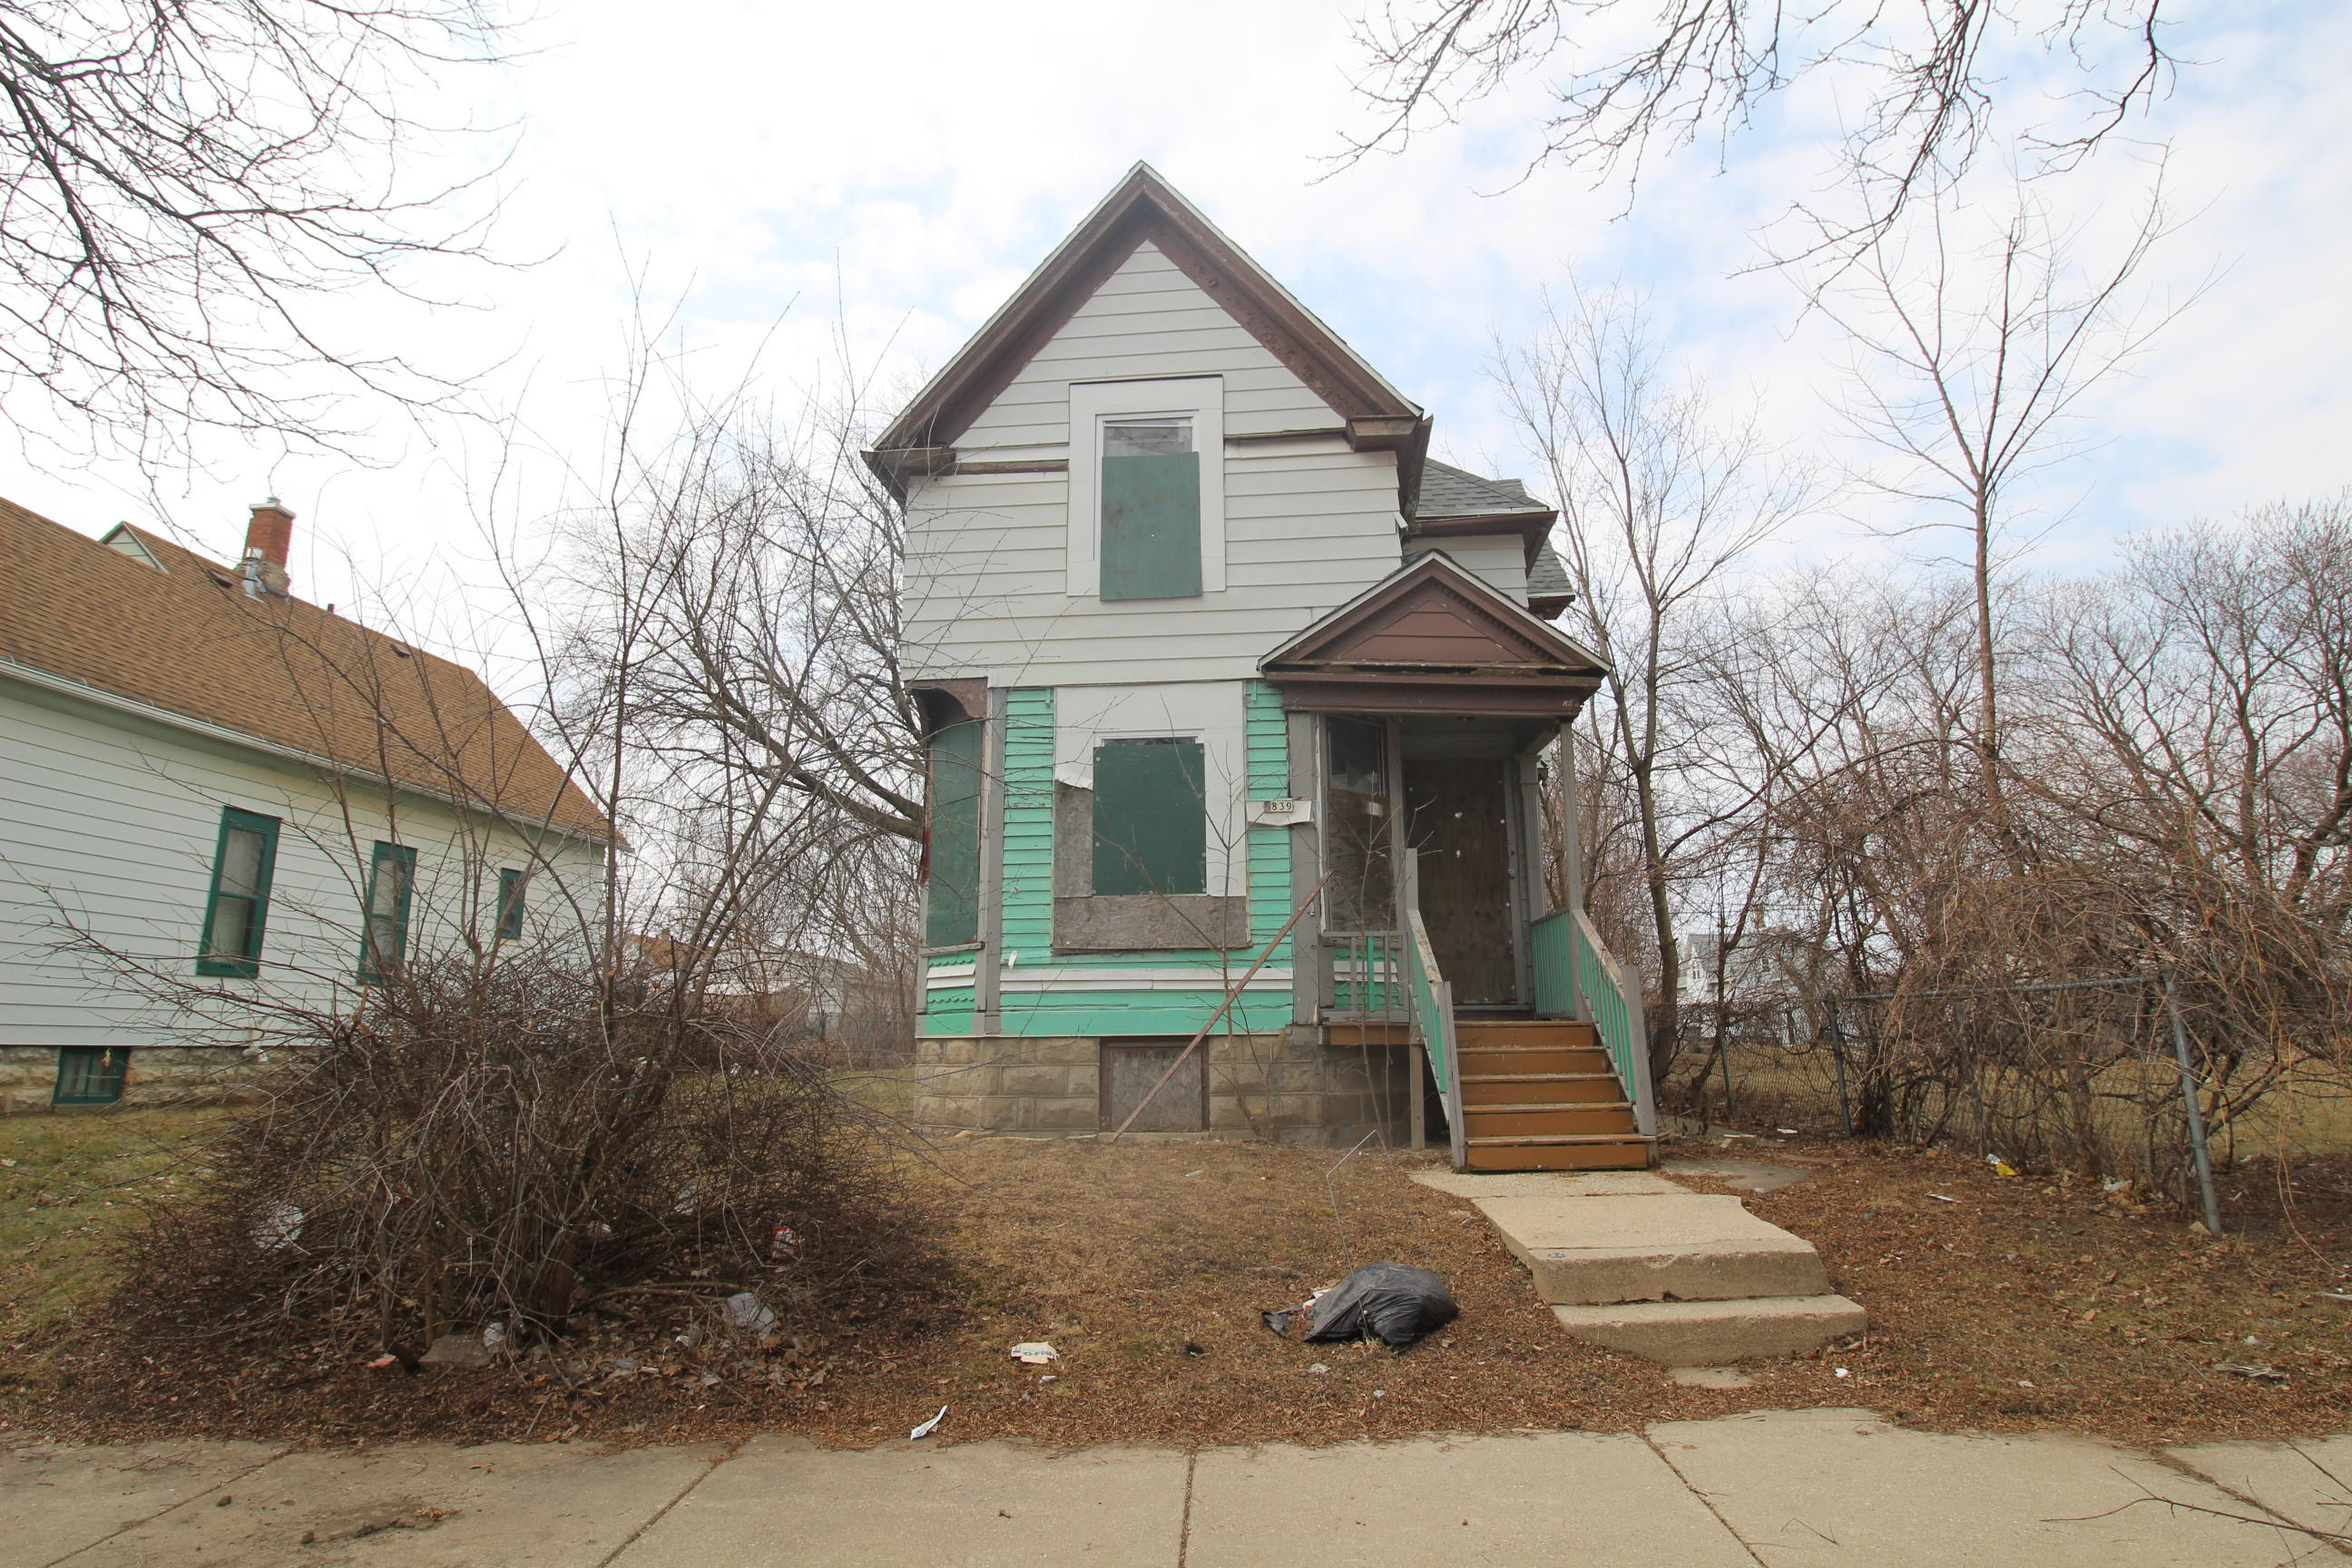 2839 6th St, Milwaukee, Wisconsin 53212, 3 Bedrooms Bedrooms, 6 Rooms Rooms,1 BathroomBathrooms,Single-Family,For Sale,6th St,1628336